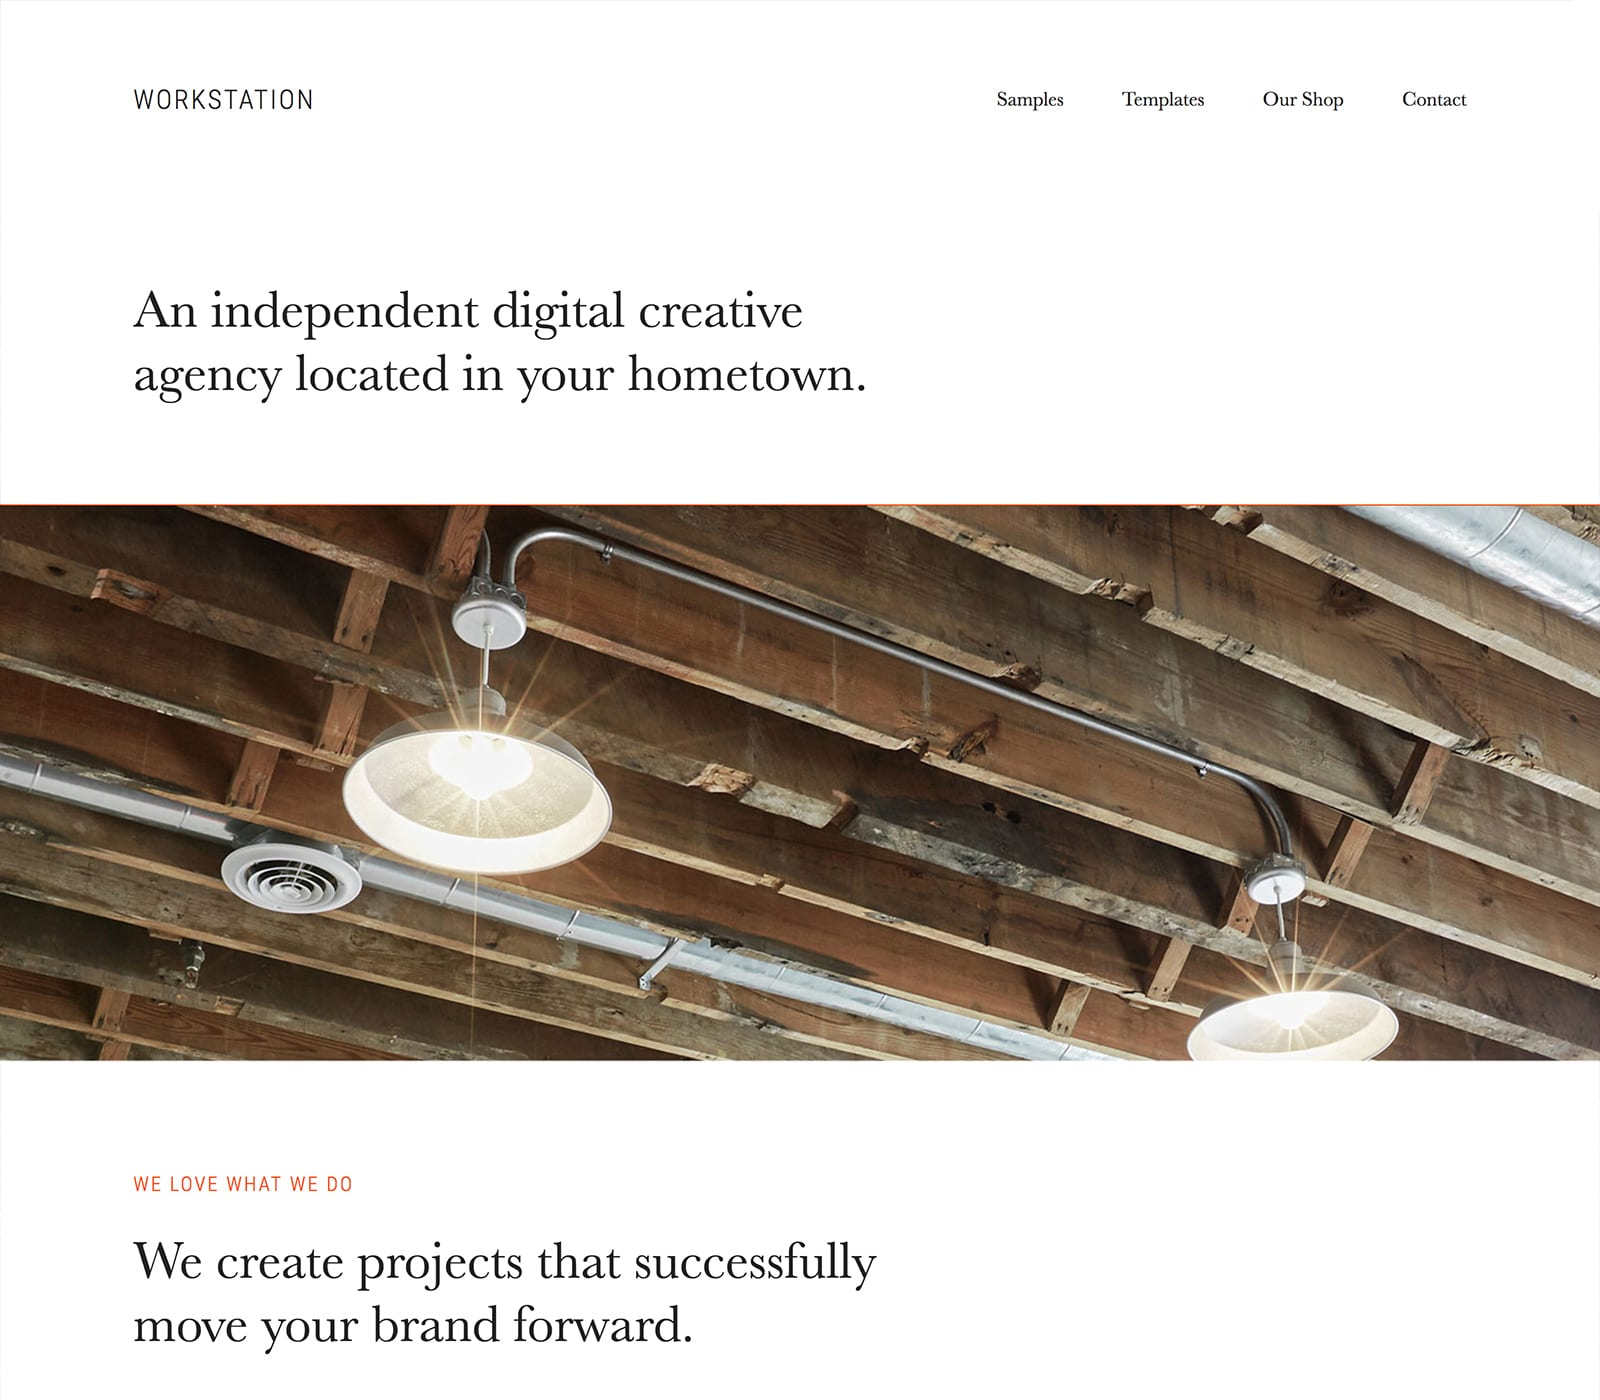 Whether you're a creative studio or a one-person shop, Workstation is the perfect theme to use to welcome visitors into your online space. This clean, open theme will feature your best work with its large, dramatic imagery and elegant typography.